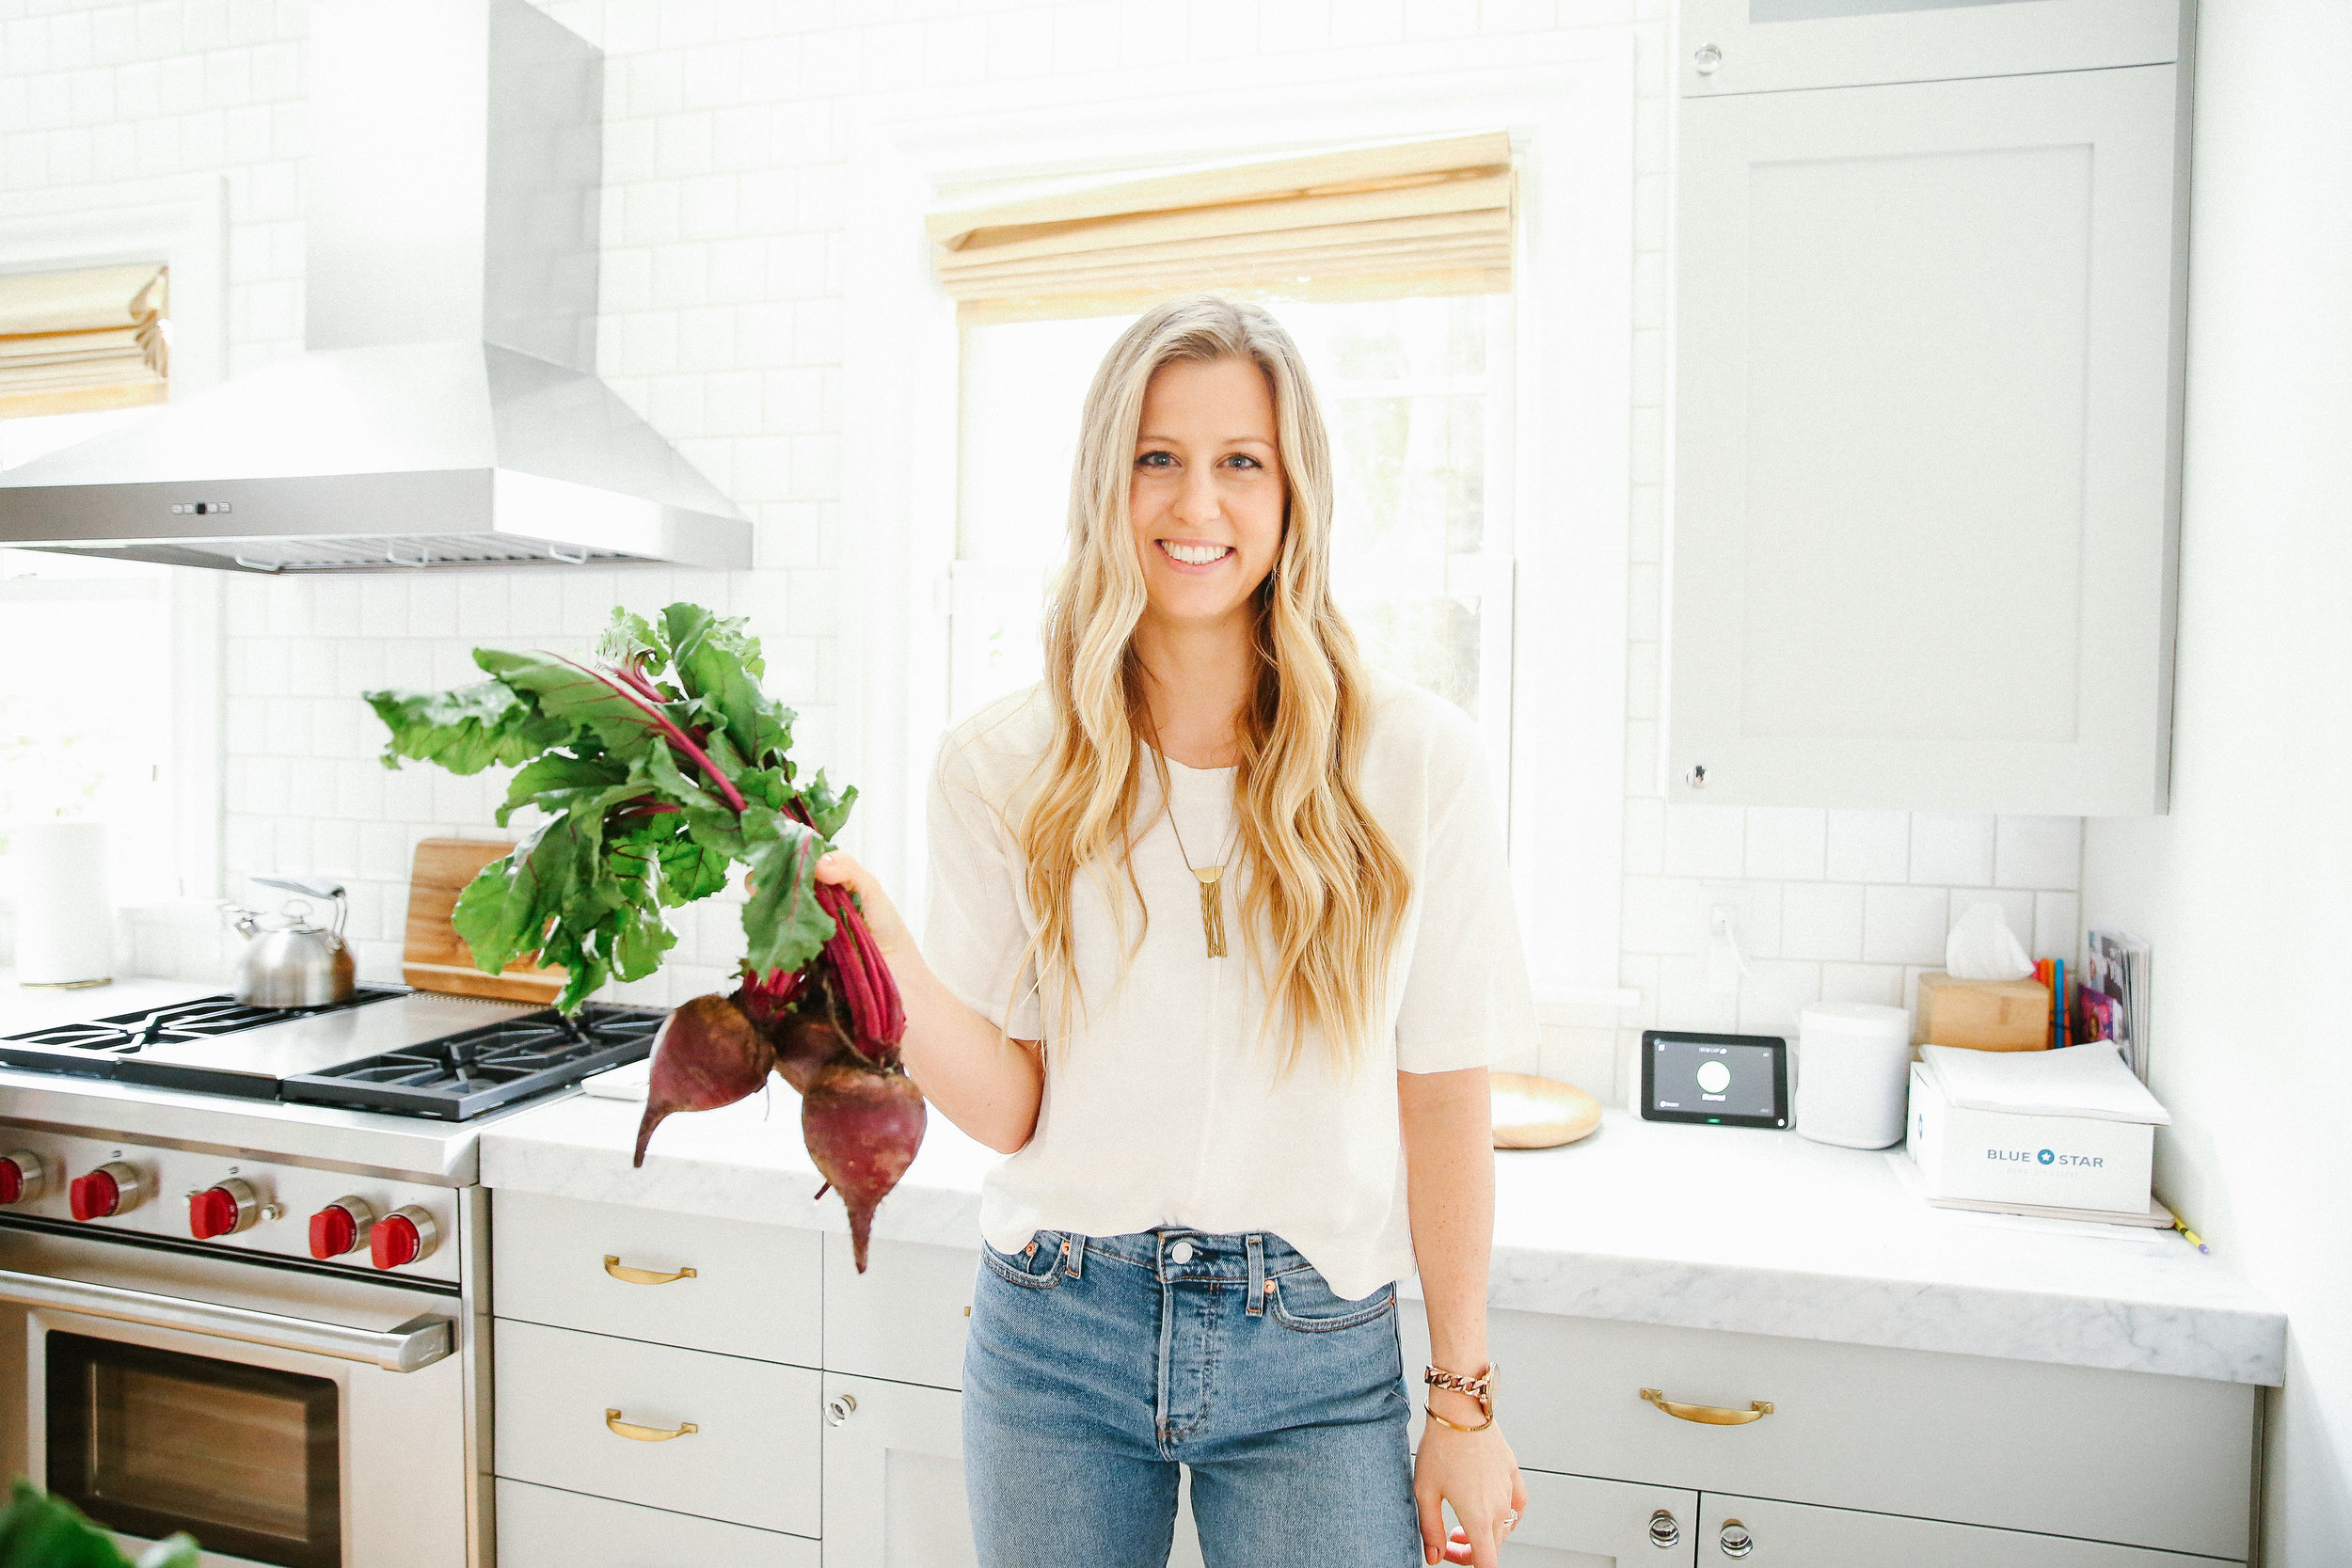 Beets for pregnancy